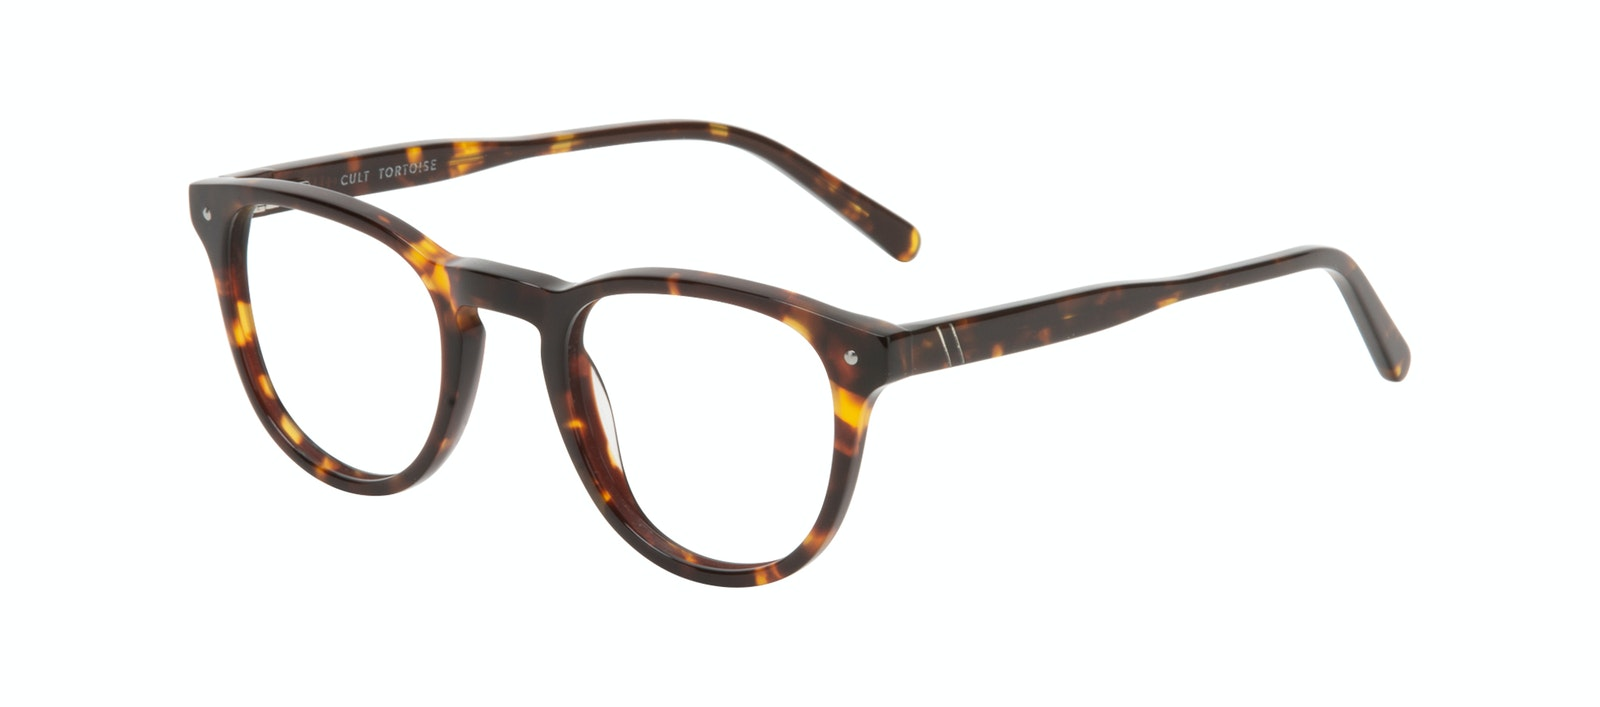 Affordable Fashion Glasses Round Eyeglasses Men Cult Tortoise Tilt